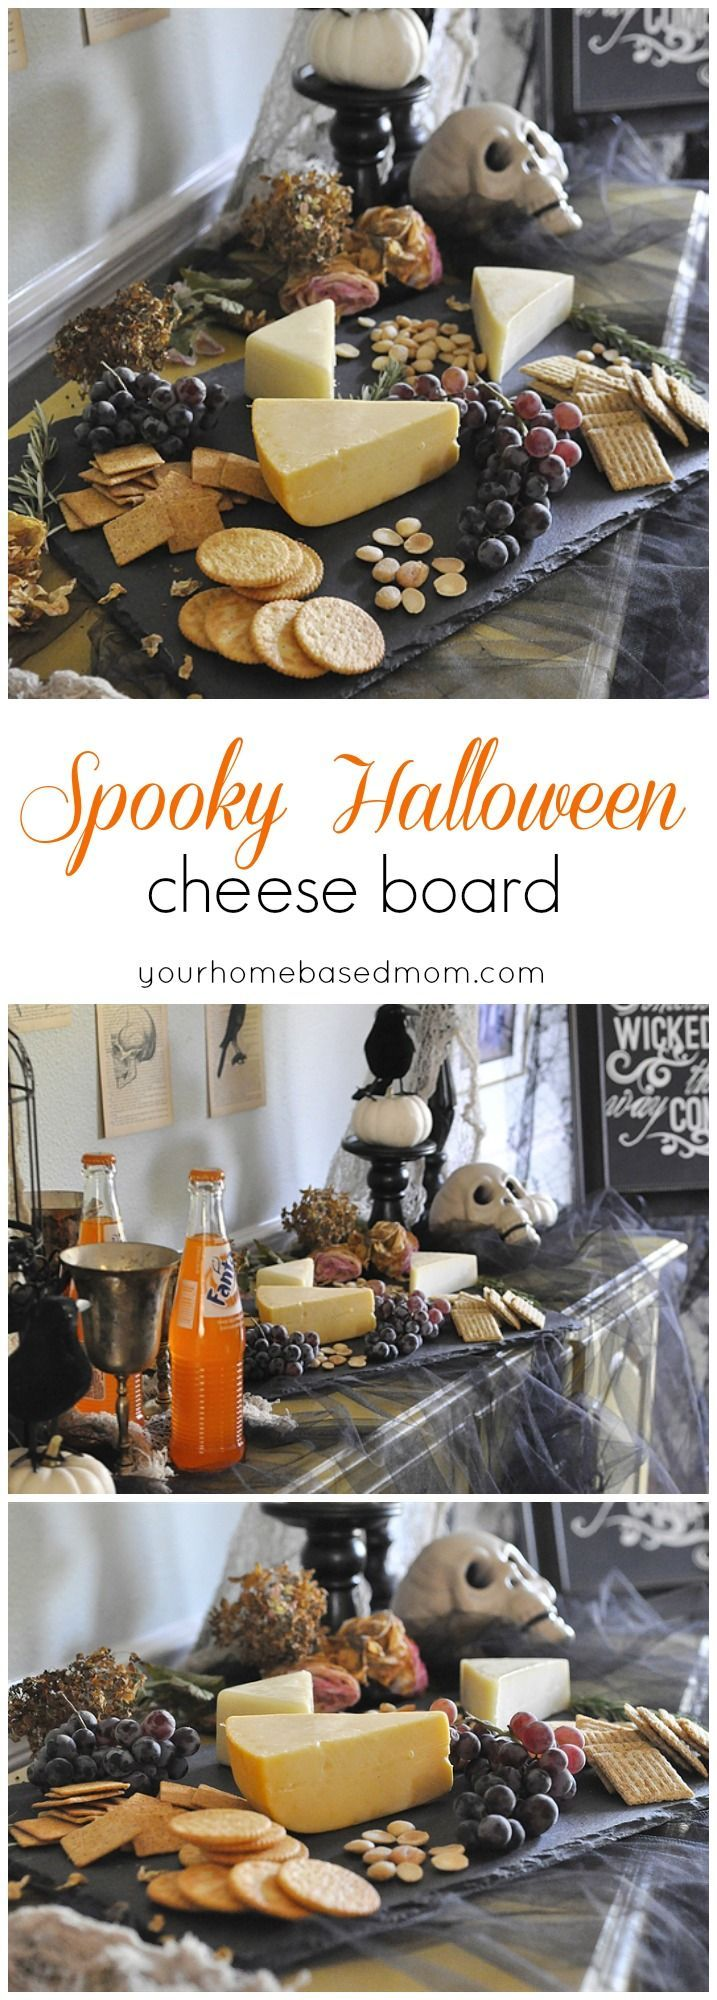 Charming Halloween Dinner Party Ideas For Adults Part - 13: Mummy Wrapped Brie And Halloween Dinner Party